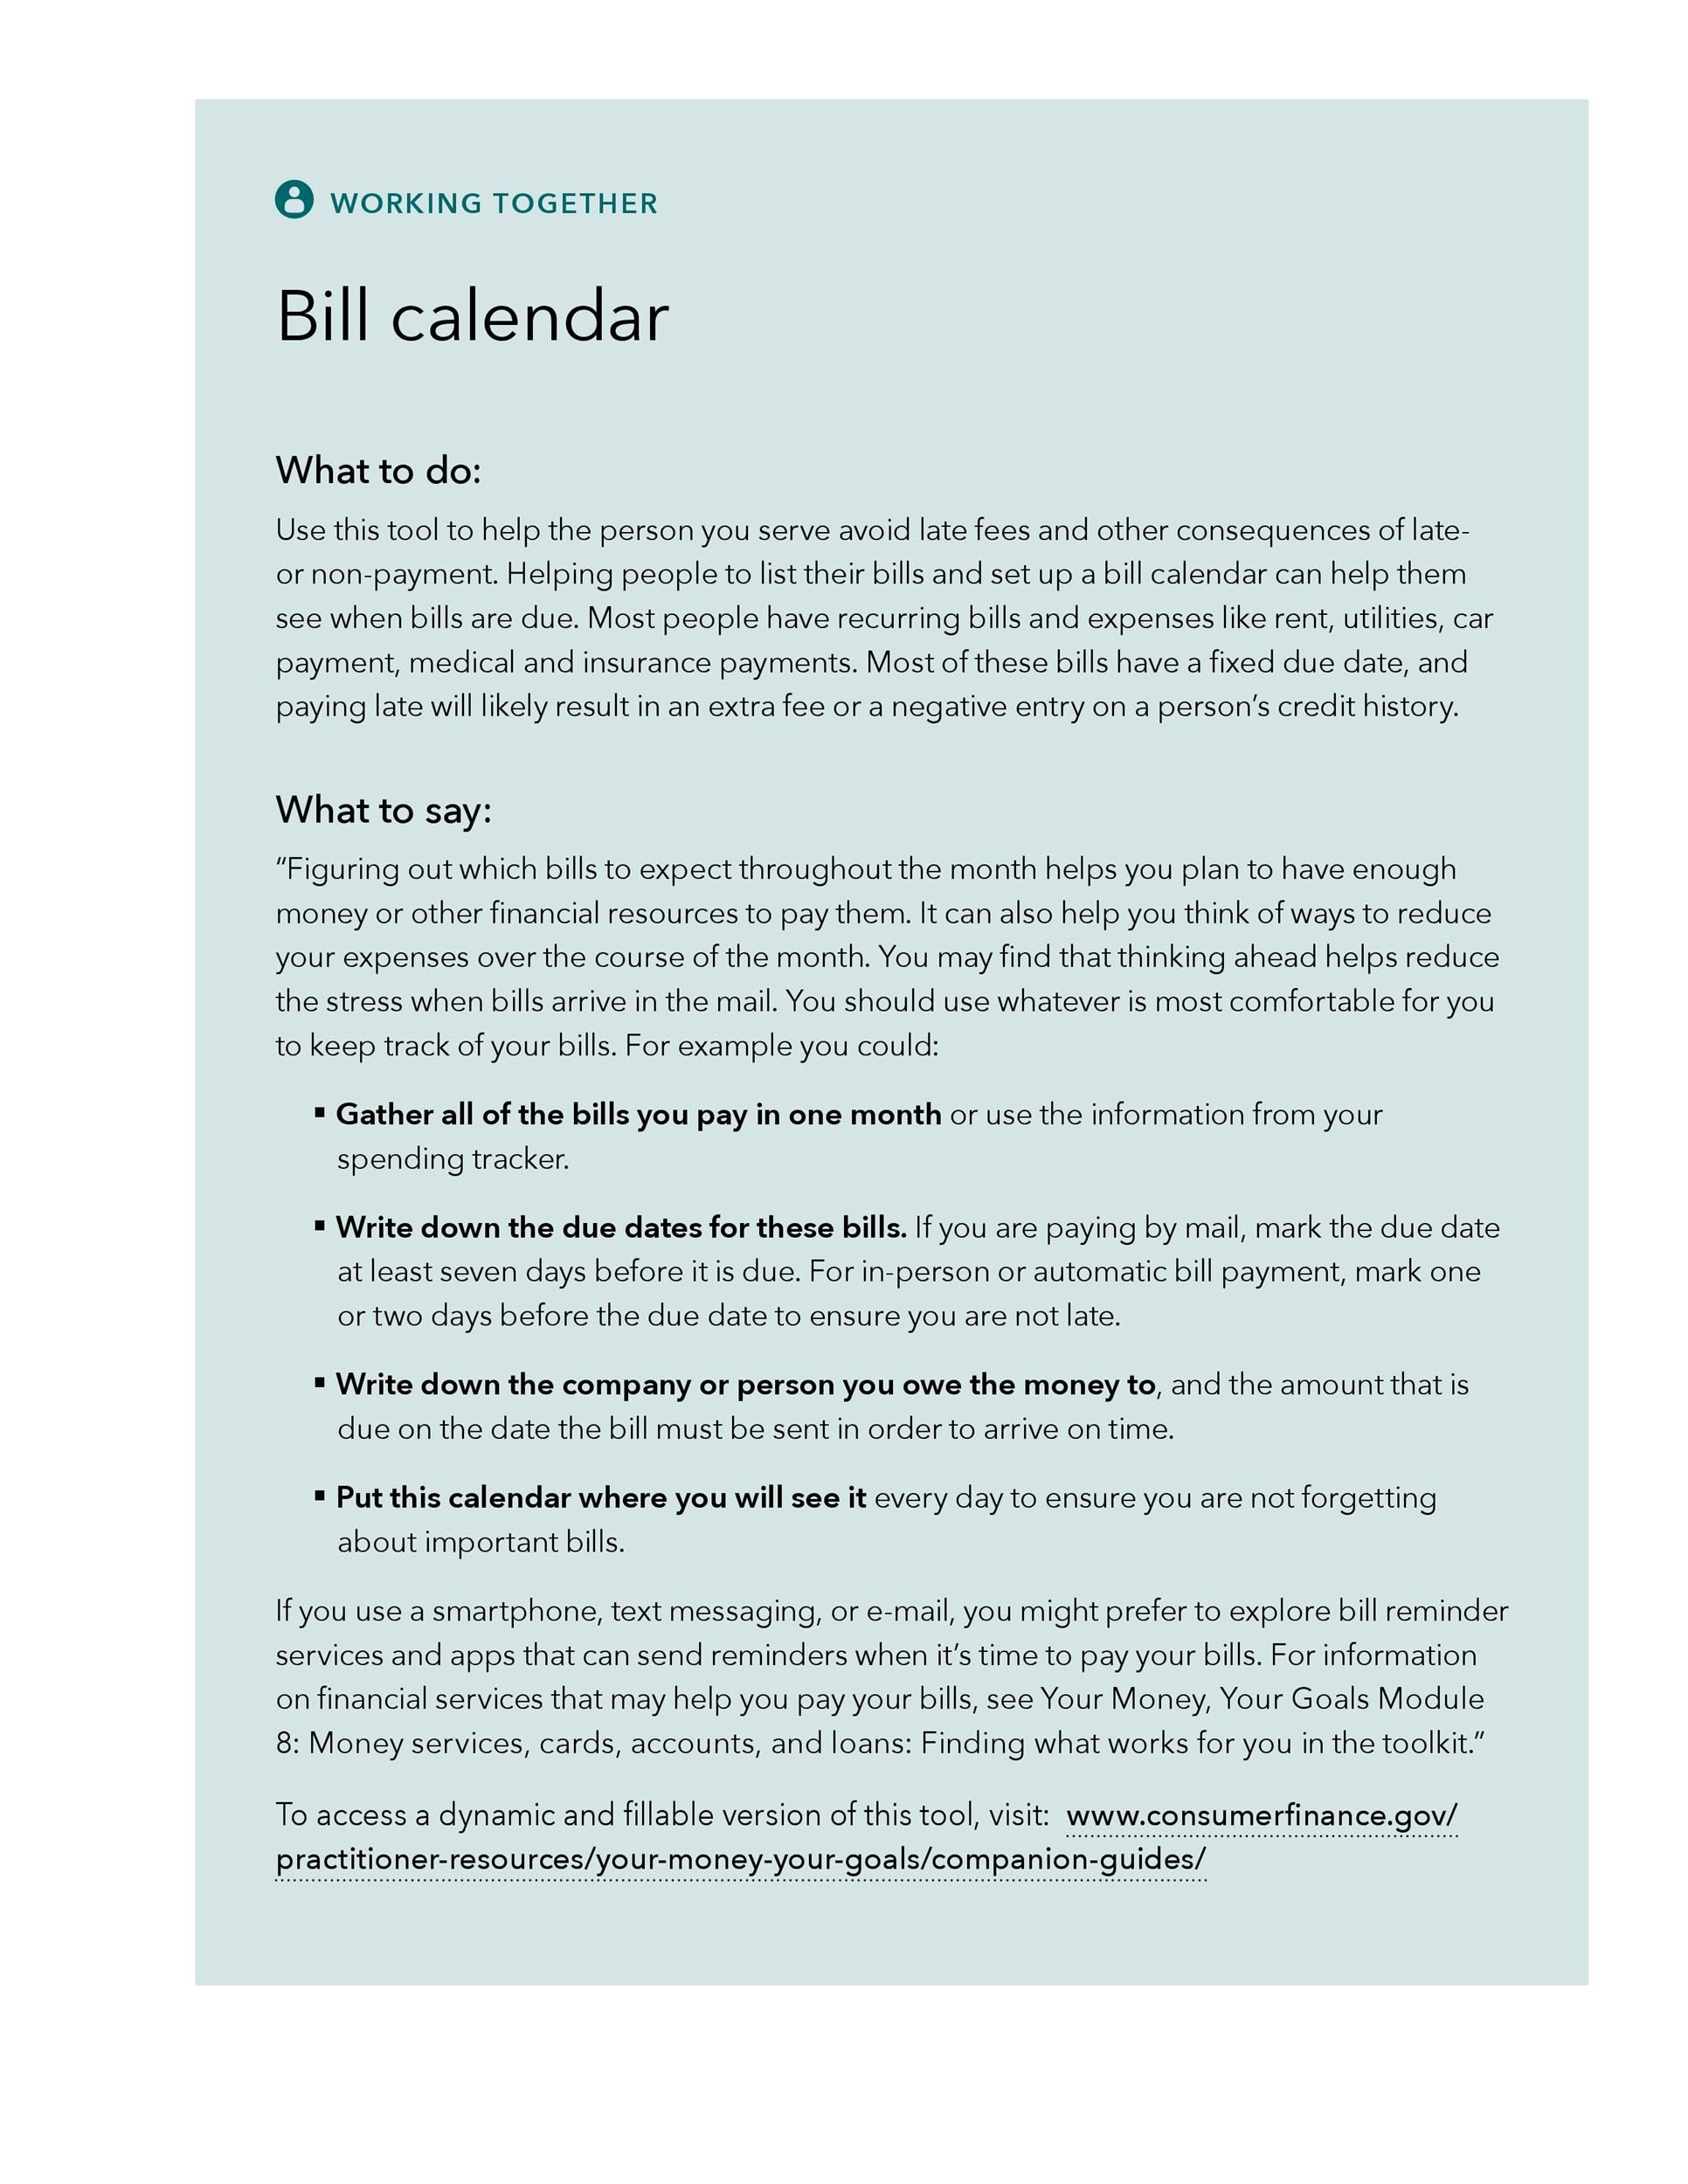 33 Free Bill Pay Checklists Bill Calendars Pdf Word Excel In 2021 Bill Pay Checklist Paying Bills Bill Calendar